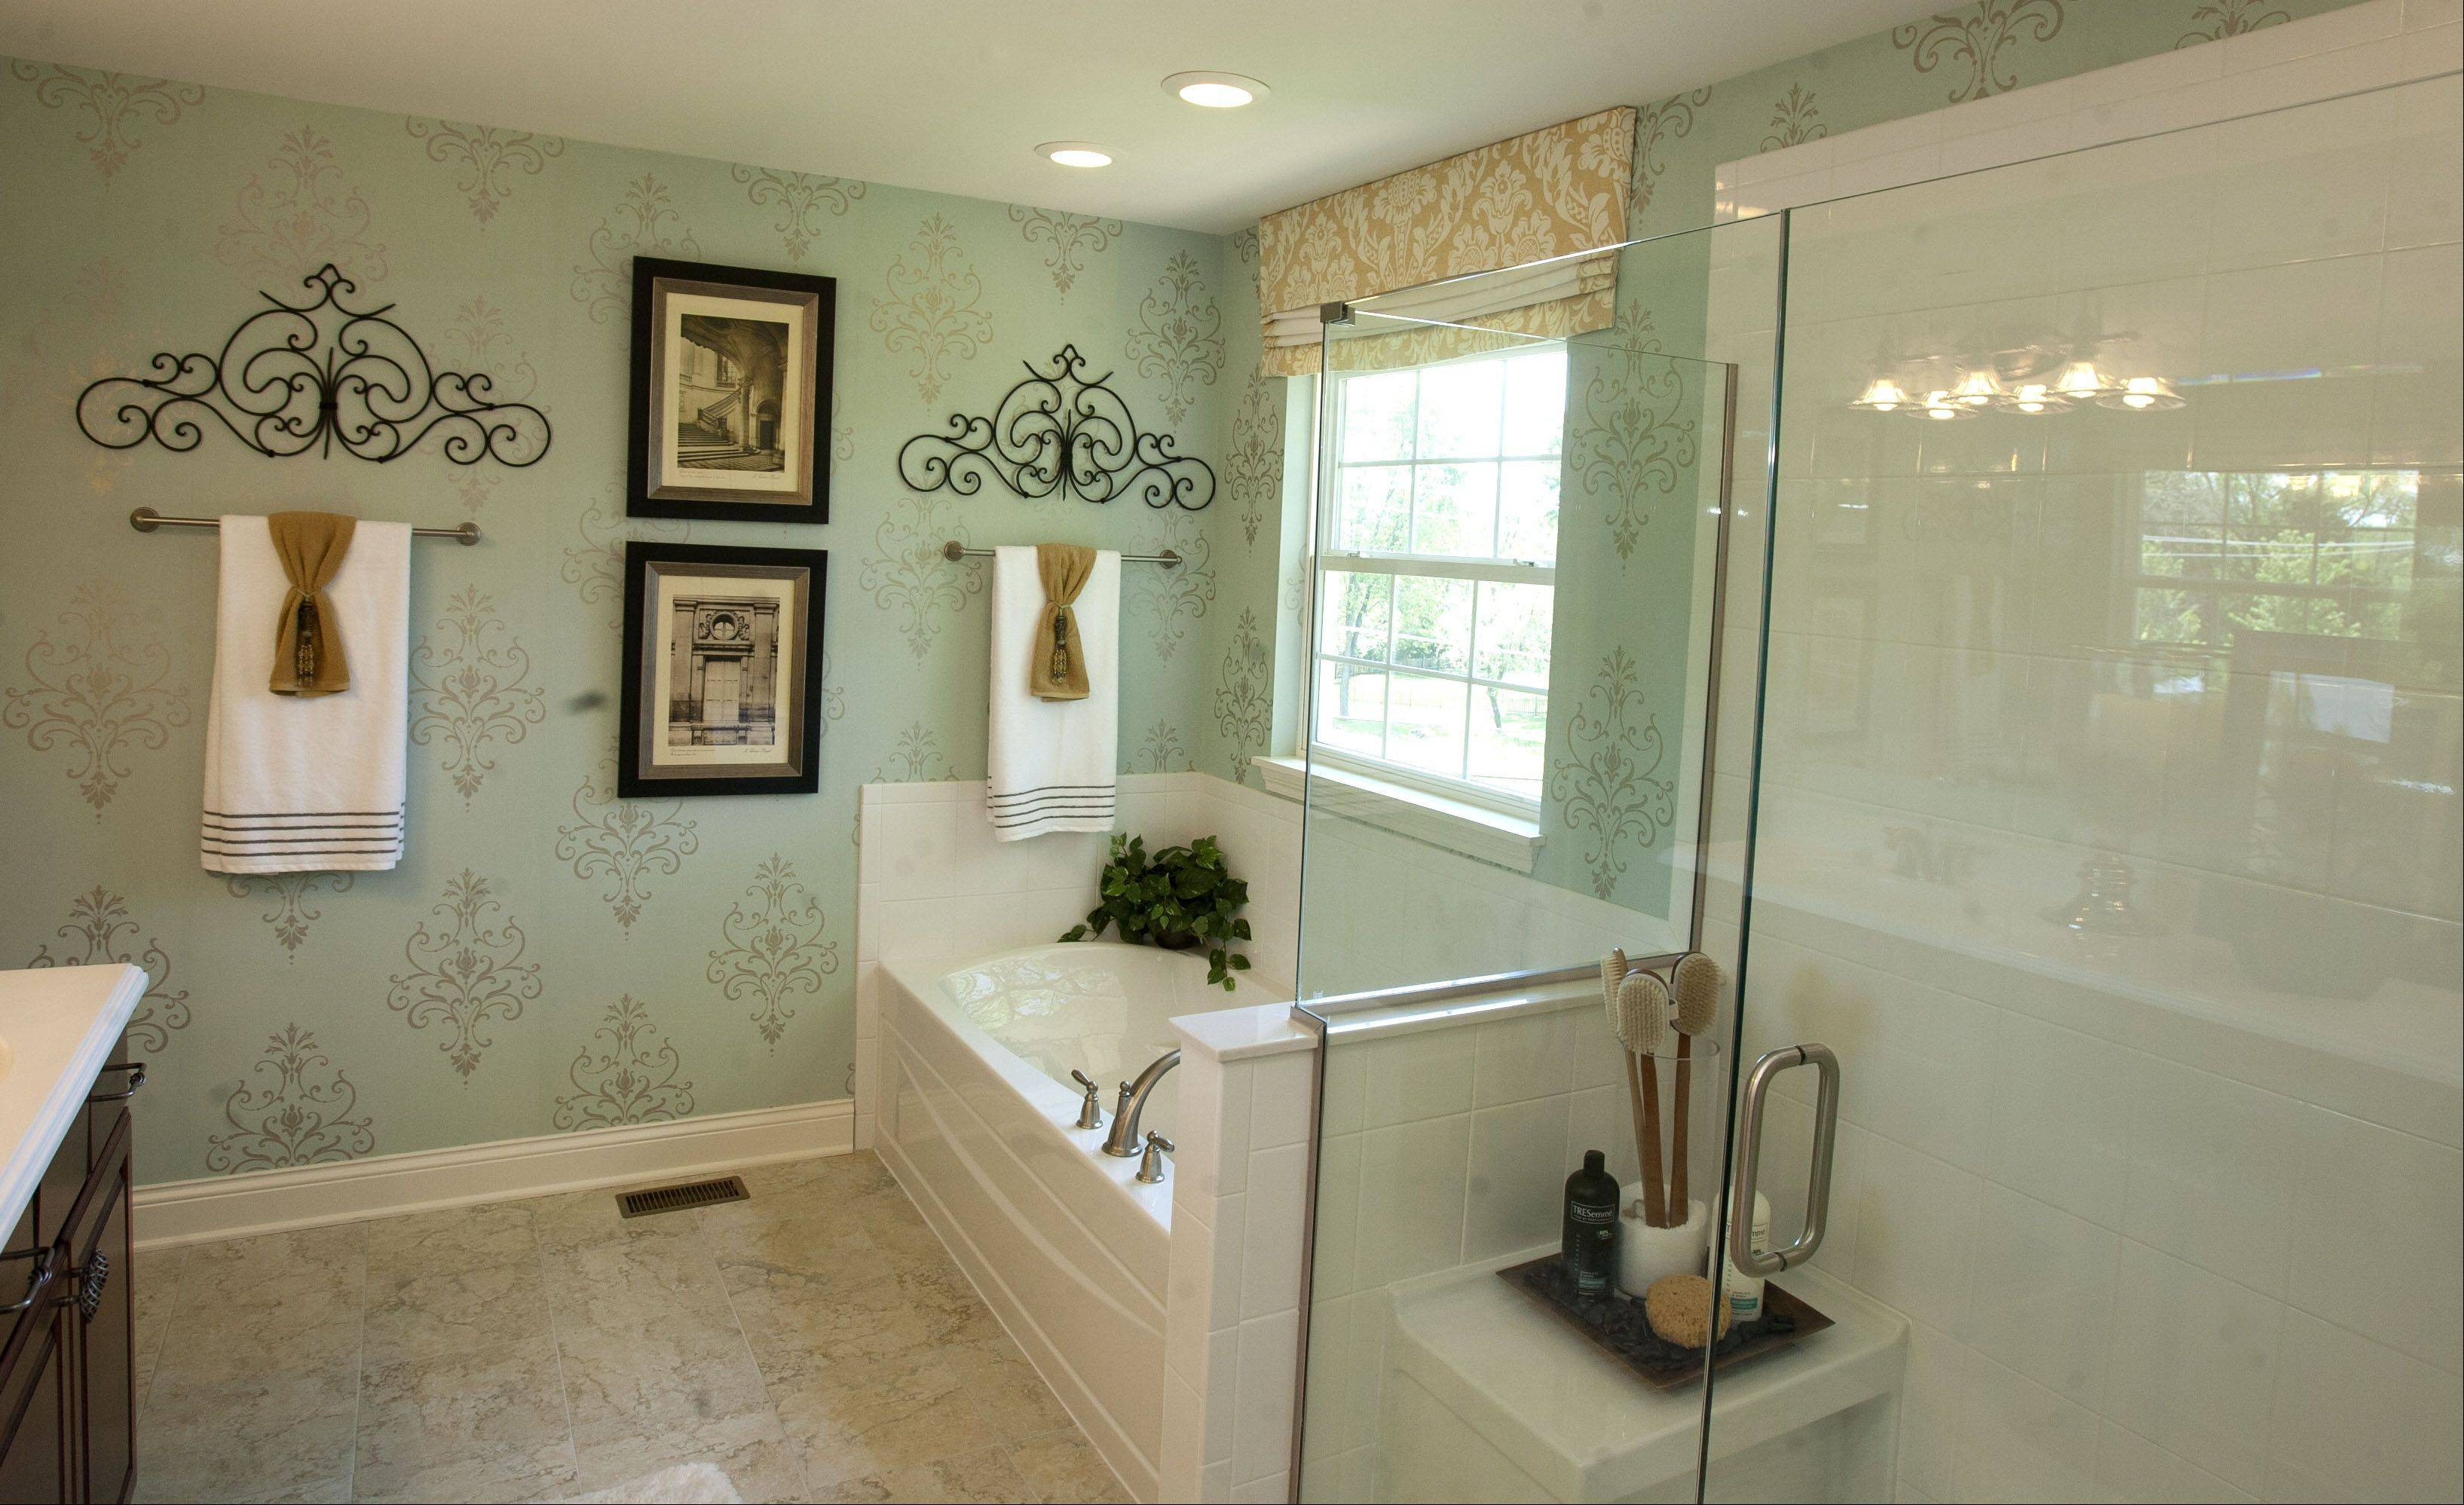 The bathroom in the Morton model at Glenrise Grove in Glen Ellyn.